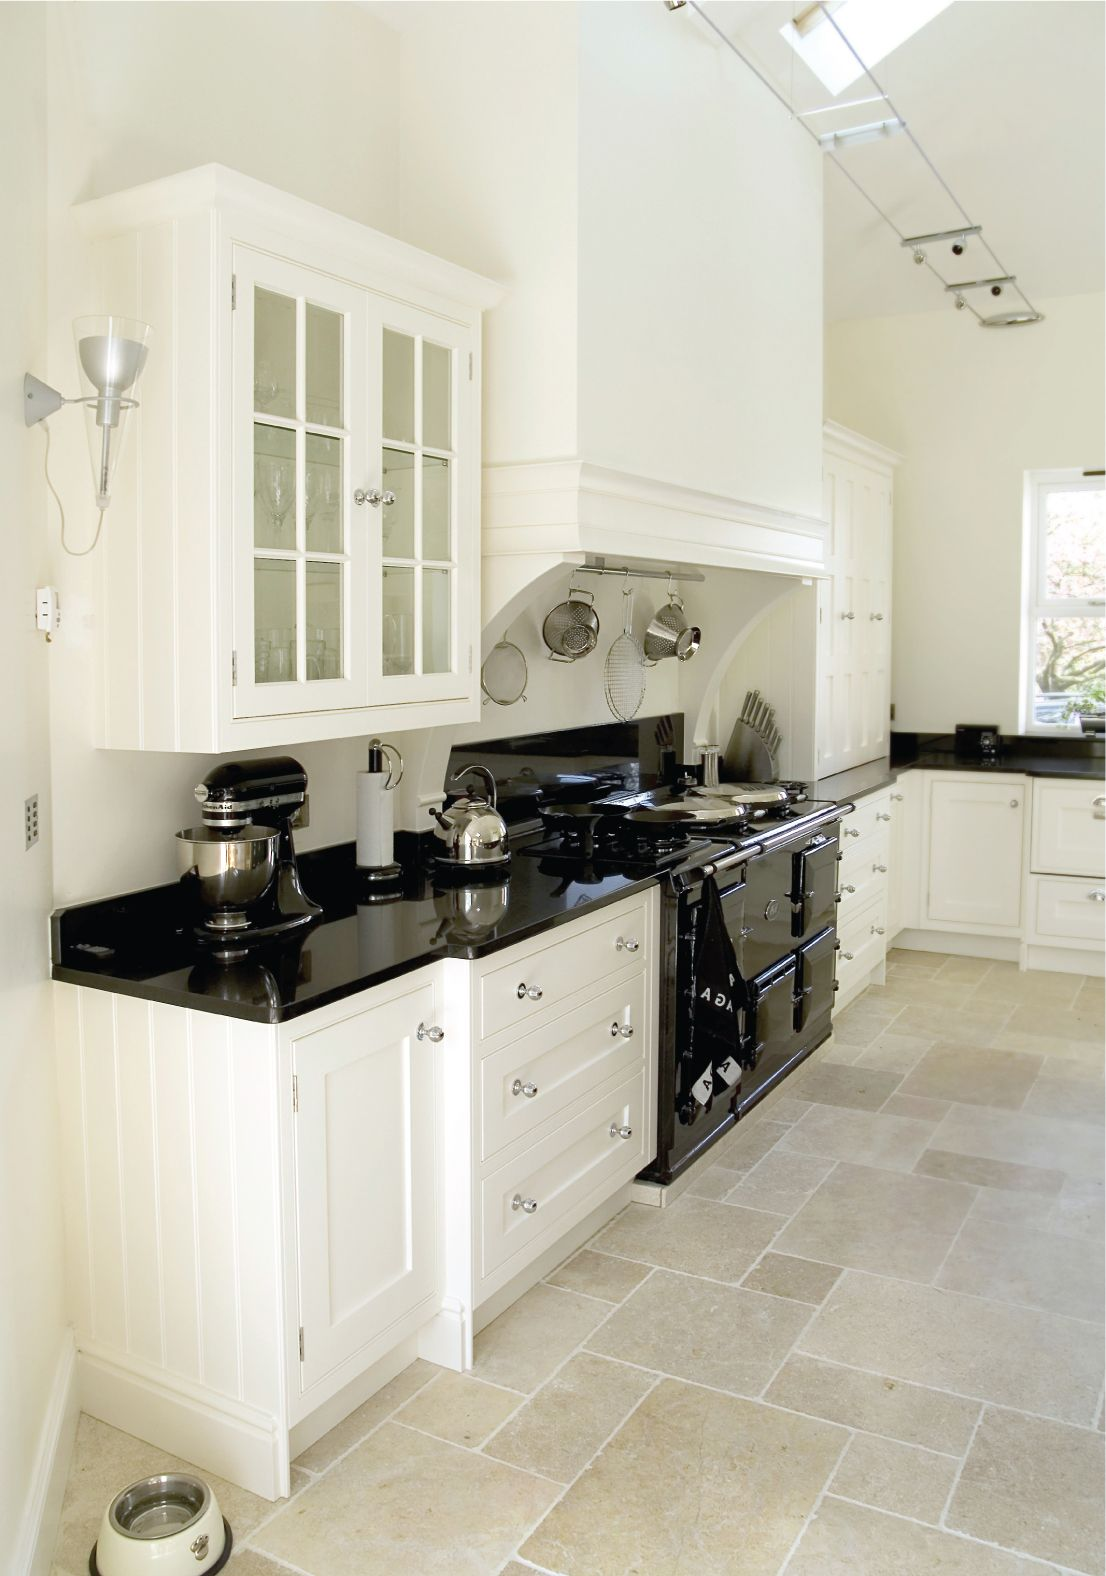 With a modern black painted finish complimented by a